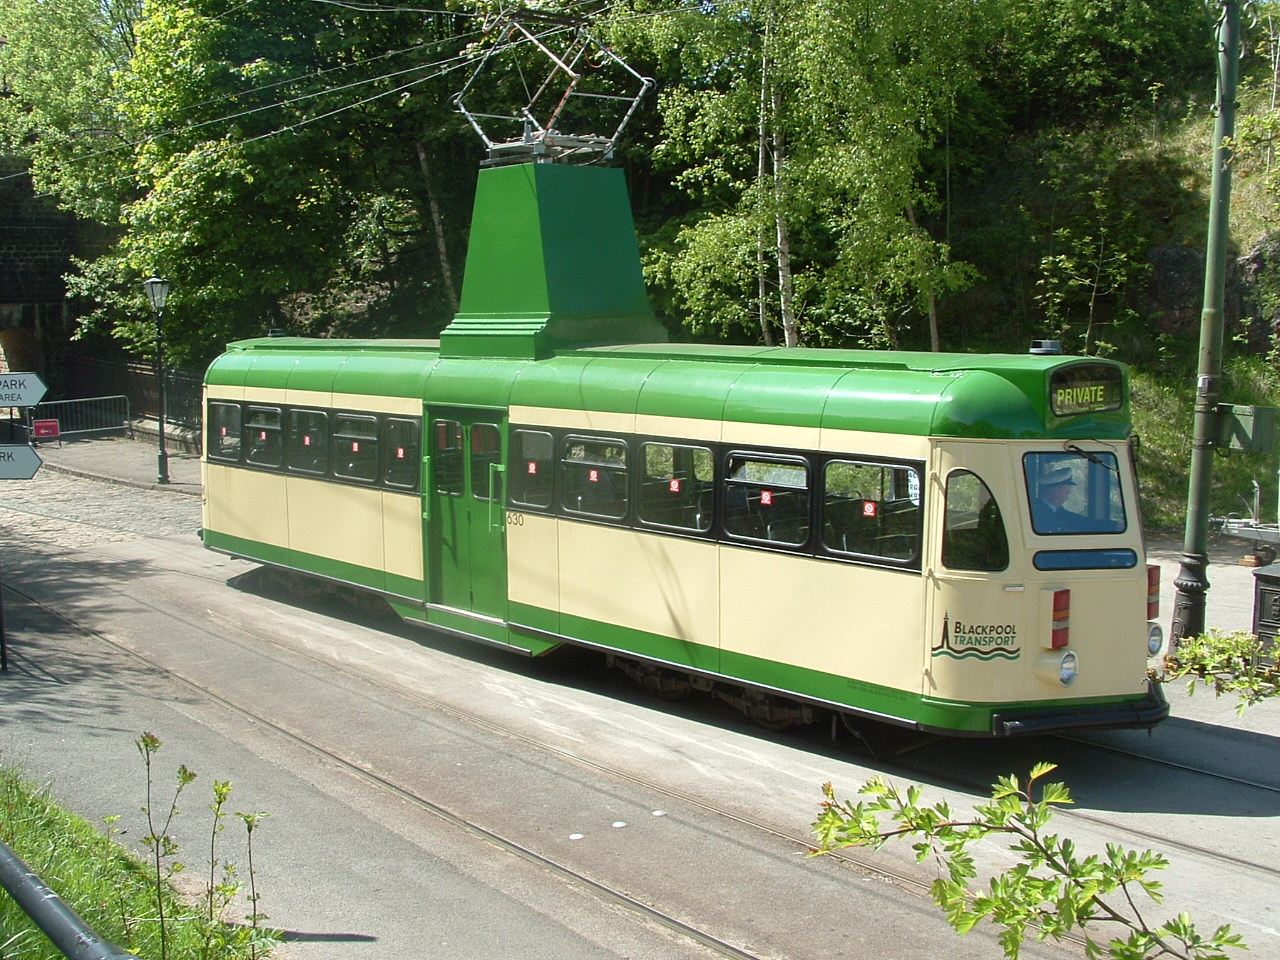 Blackpool 1937 - Brush Car No. 630 at the National Tramway Museum, Crich, Derbyshire